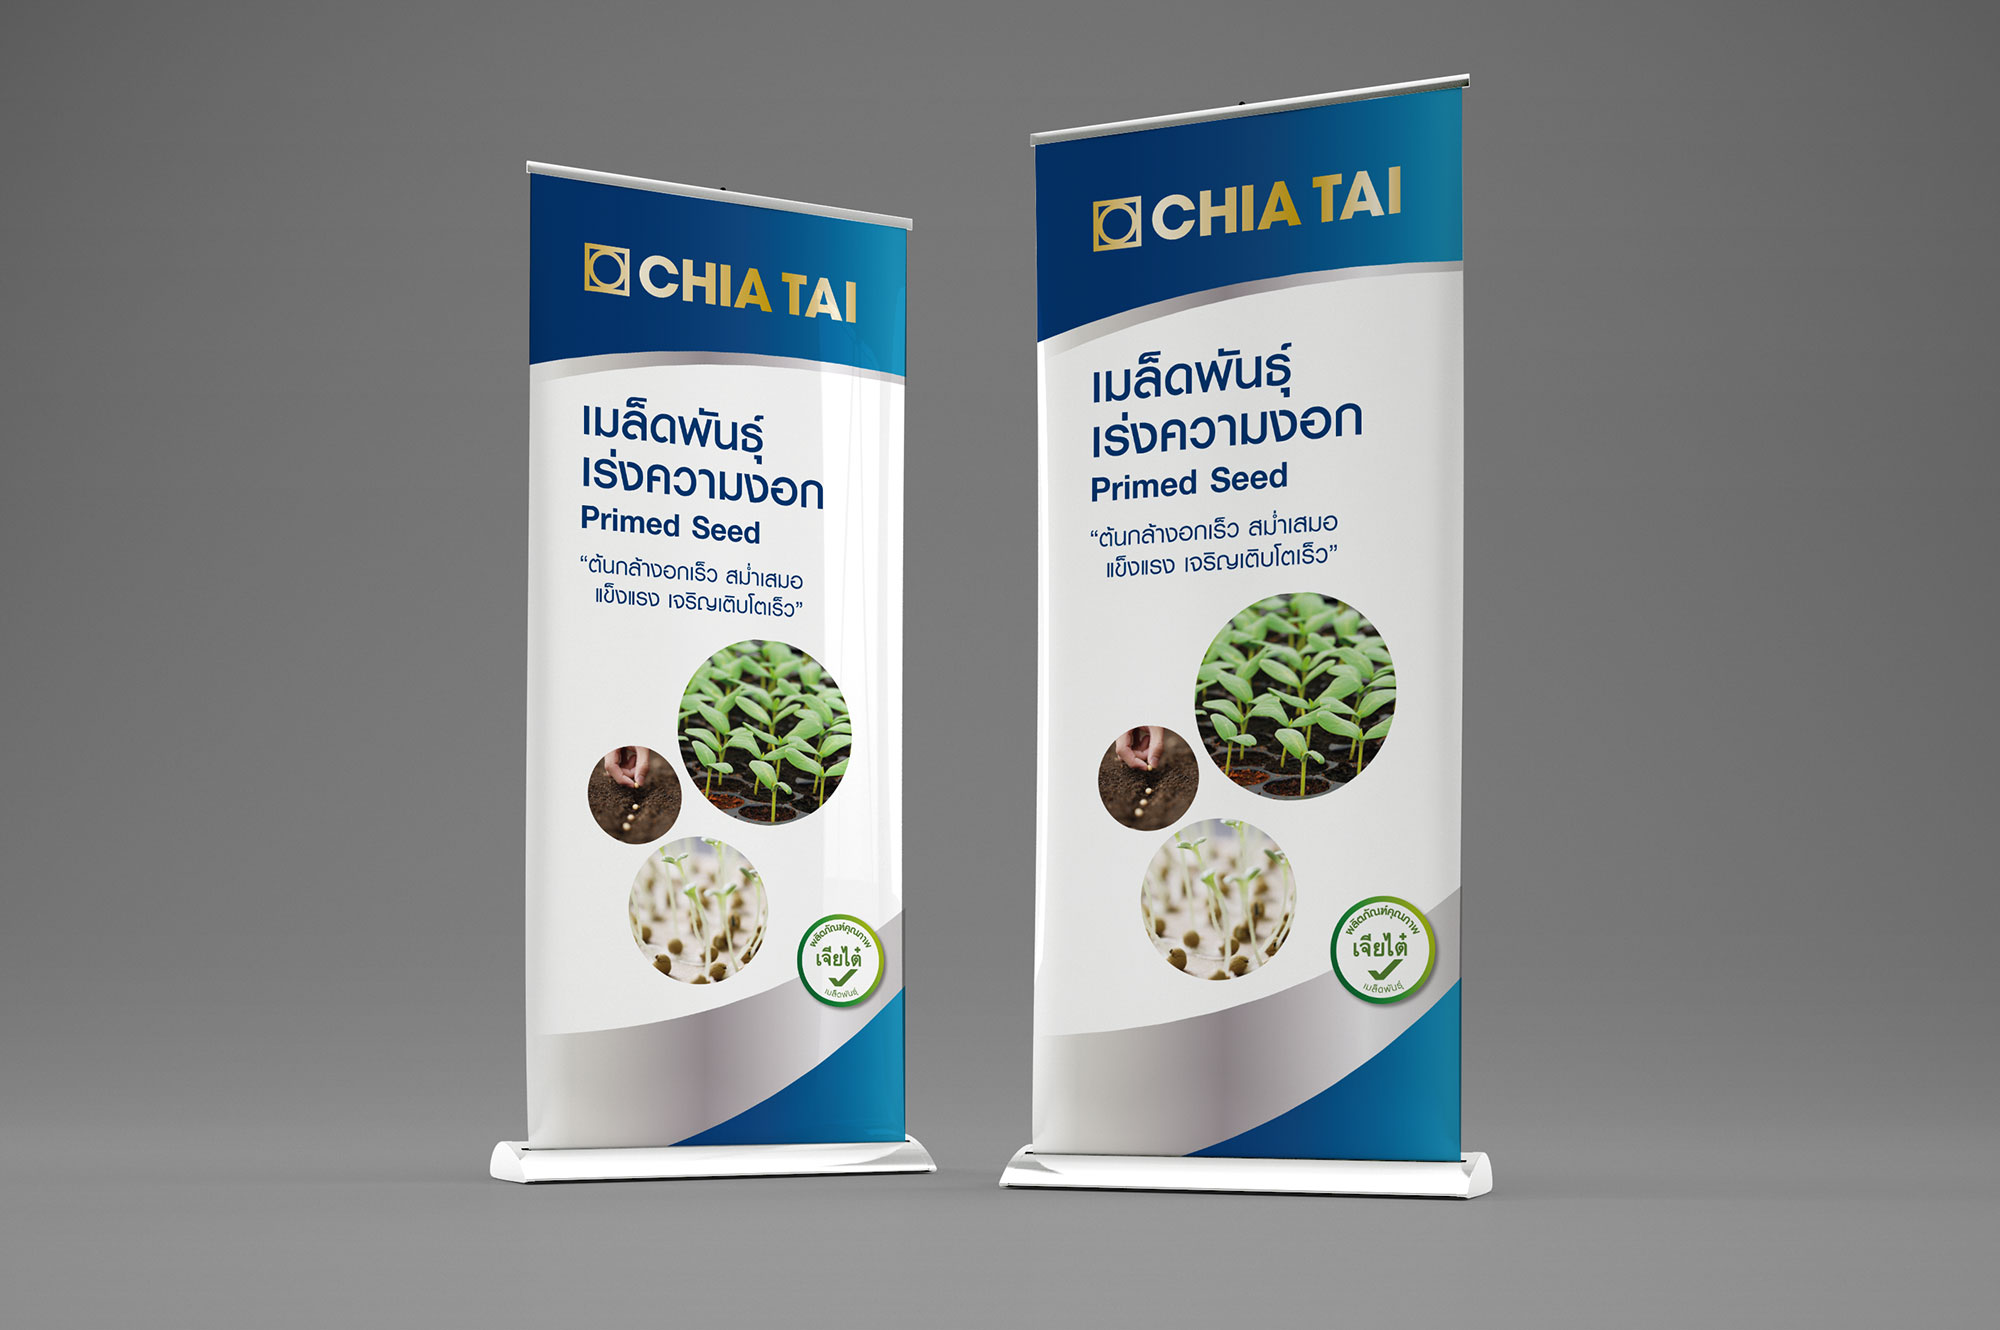 Chia Tai Pull-up Banner Design